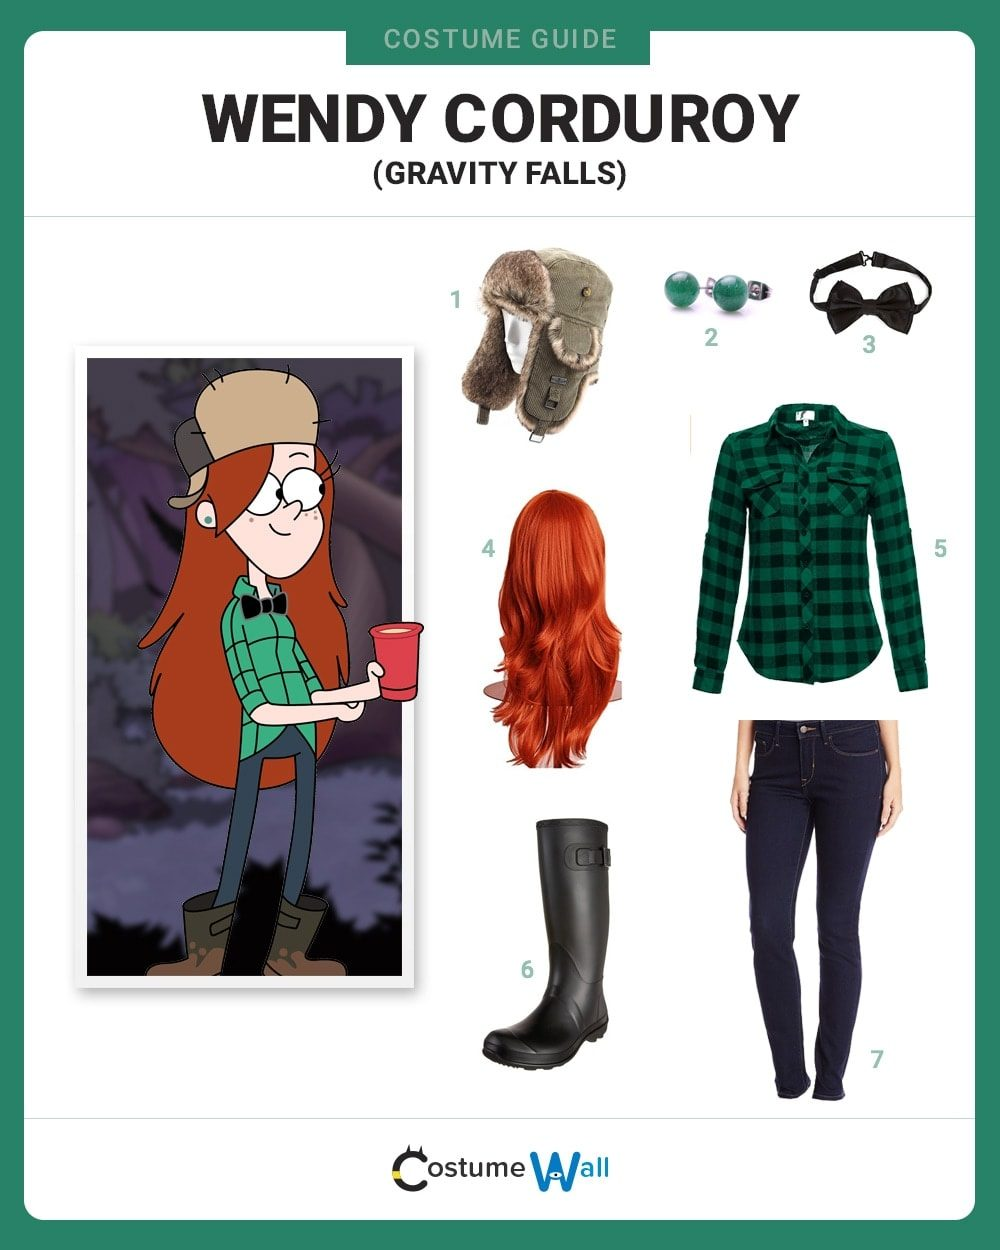 Wendy Corduroy Costume Guide